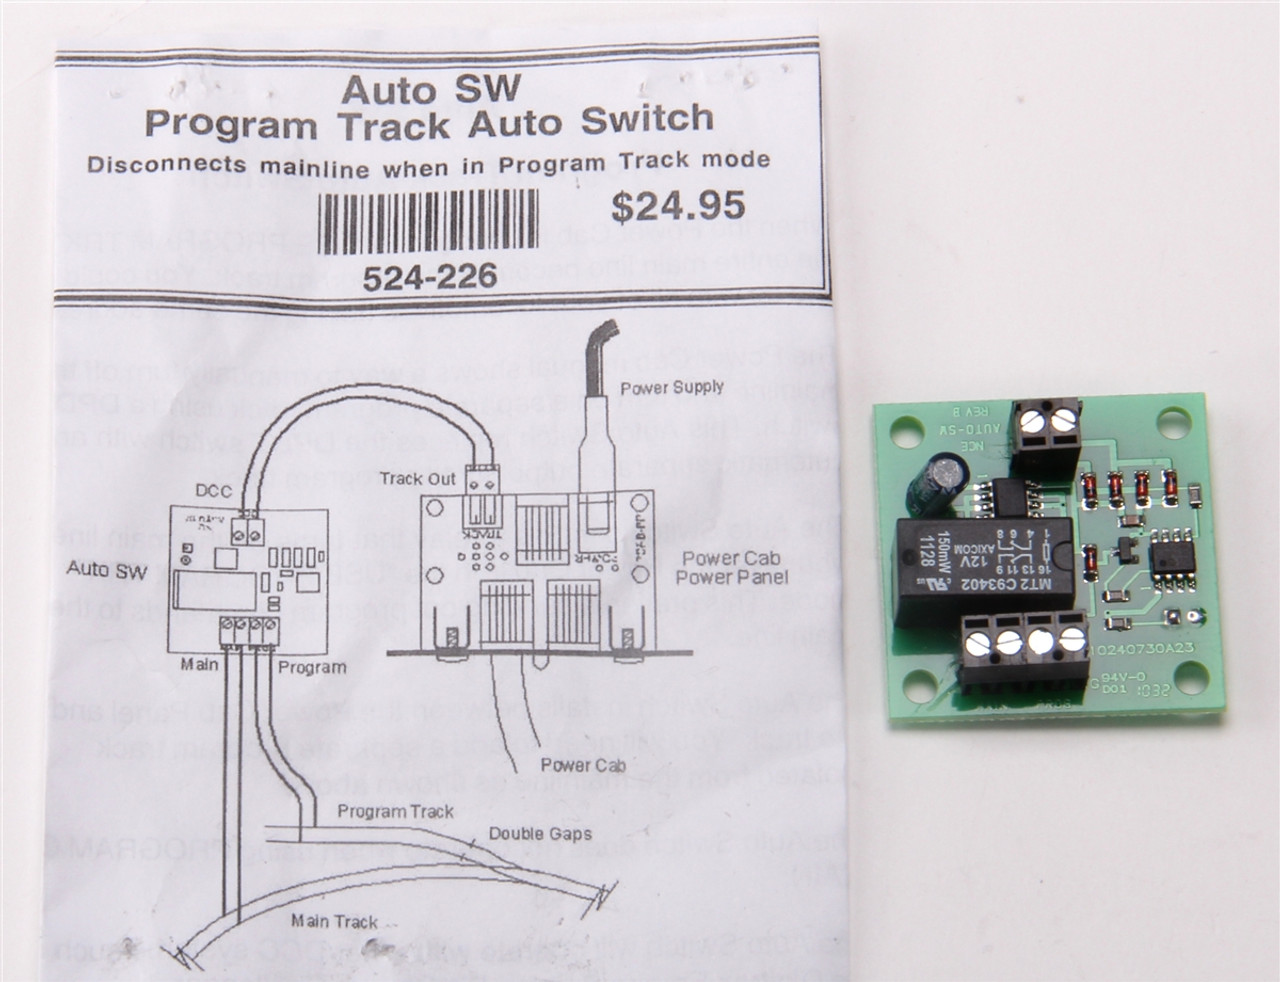 Switch It Nce Wiring Diagram - Enthusiast Wiring Diagrams •